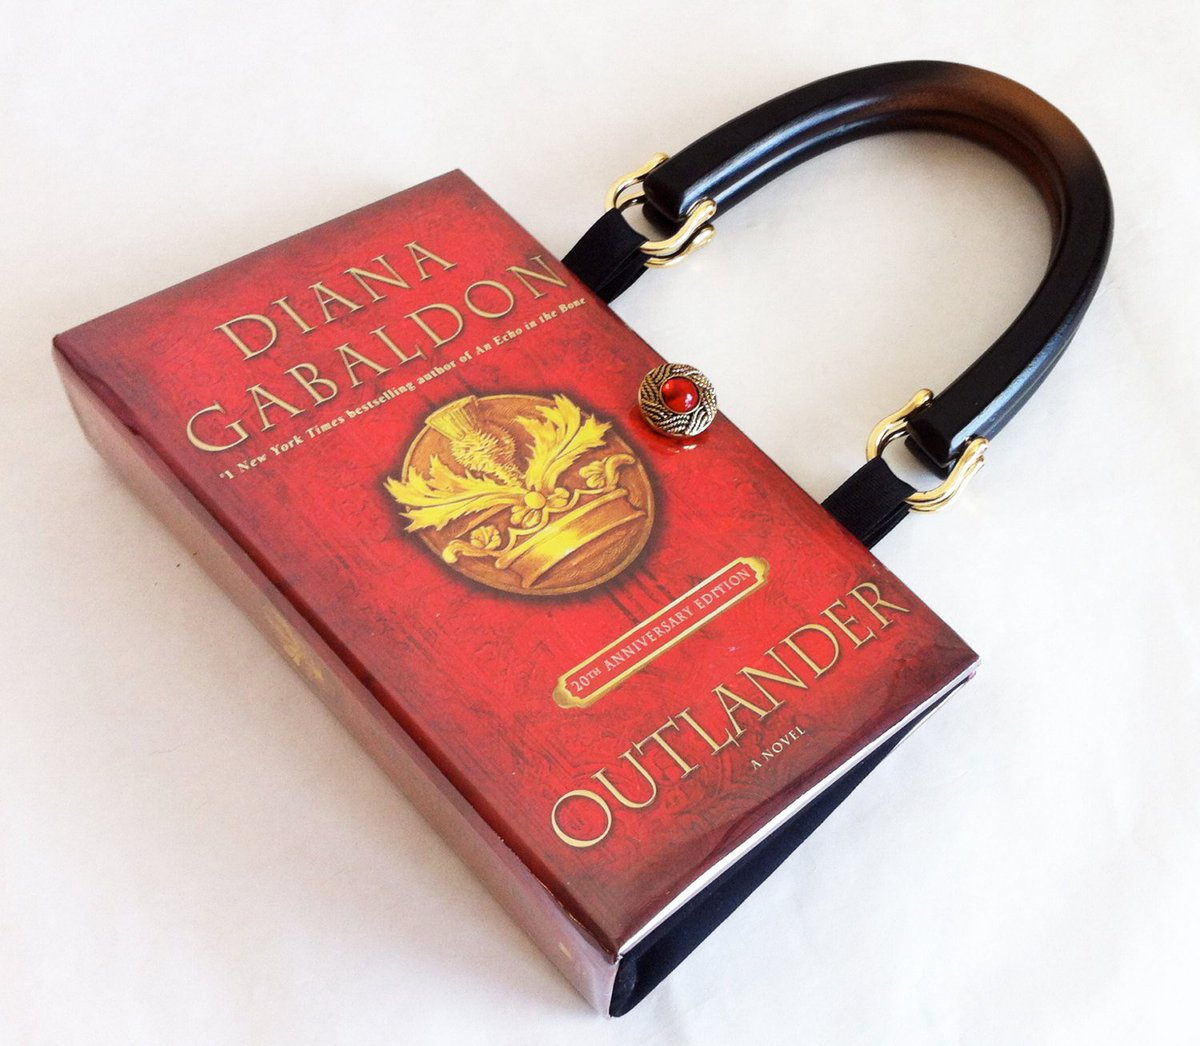 Outlander Recycled Book Purse - Outlander Book Clutch - Outlander Boo…  http:// tuppu.net/f1a95fc5  &nbsp;   #EpiconEtsy #Scotland <br>http://pic.twitter.com/TulX8EvzuF